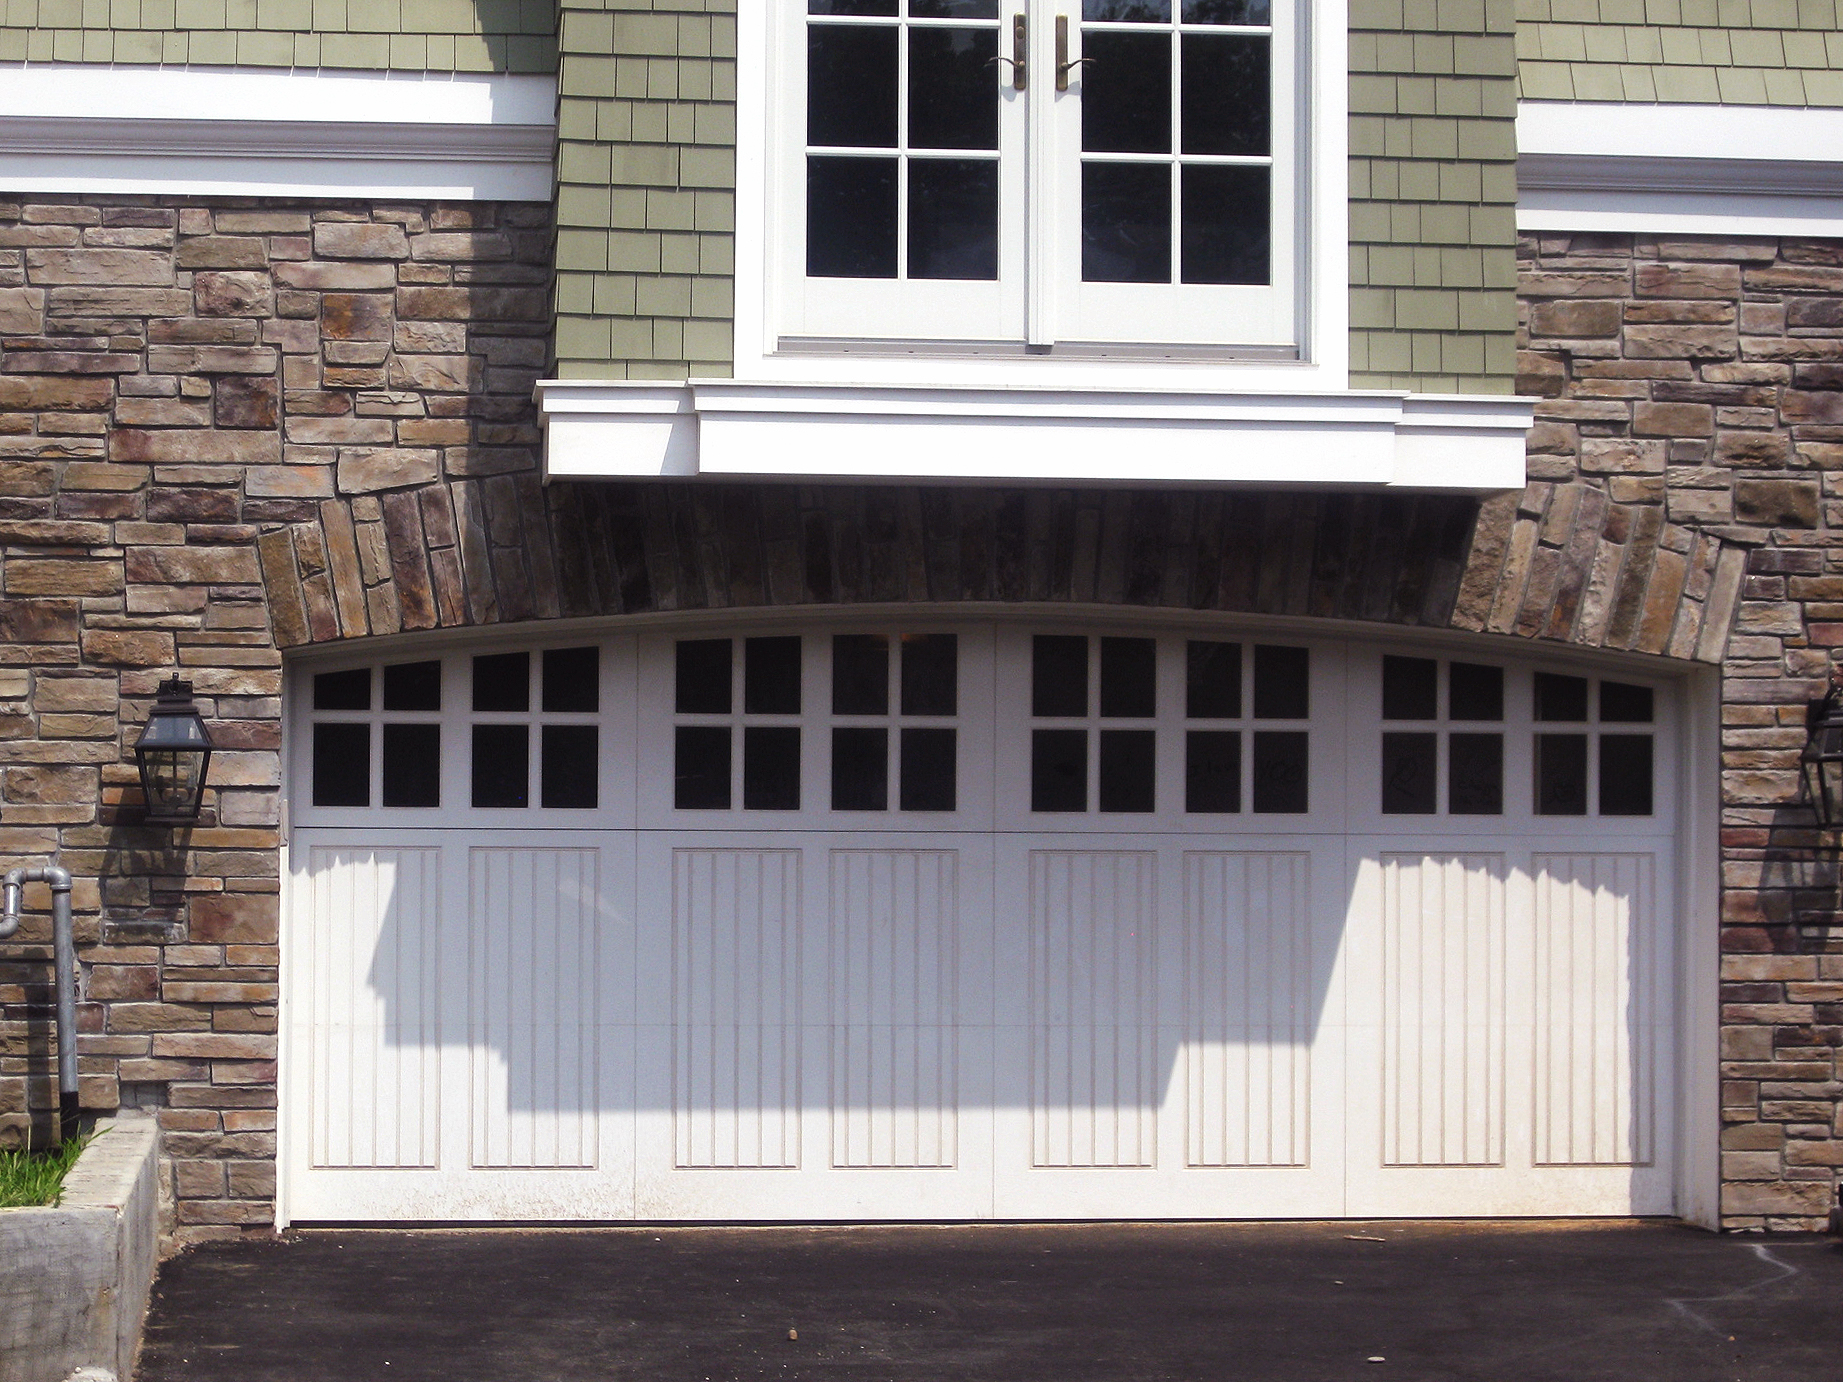 Composite Cellular Vinyl Garage Doors  Aj Garage Door. Screen Door With Pet Flap. Commercial Garages For Rent. Keyless Door Lock Reviews. Garage Door Monitor Android. Over Head Door. Bi-fold Door Knobs. Modern Door Knocker. Garage Door Supplies